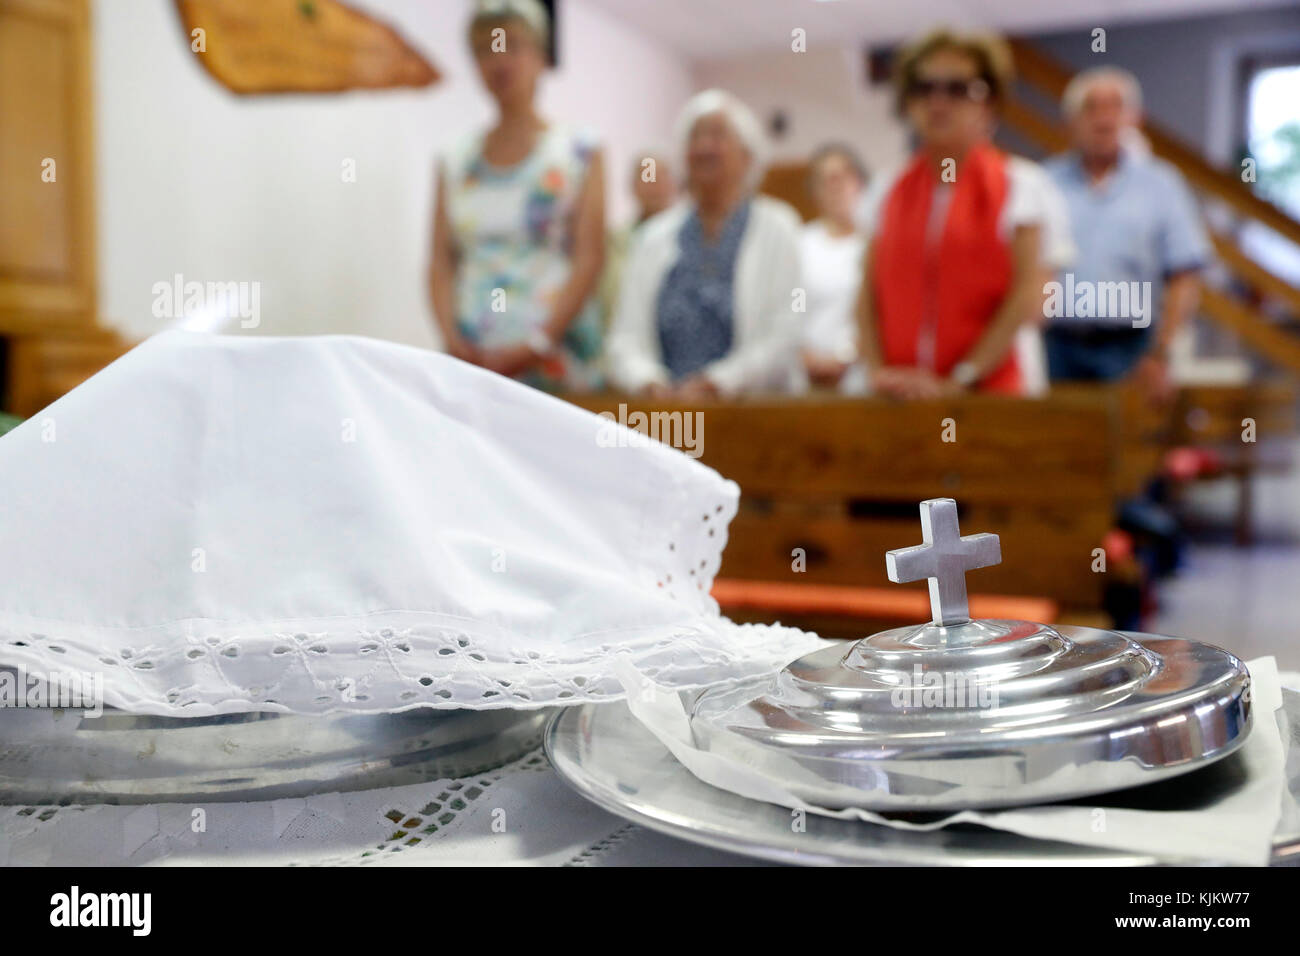 Sunday service at a Protestant church.  Holy communion.  Cluses. France. Stock Photo